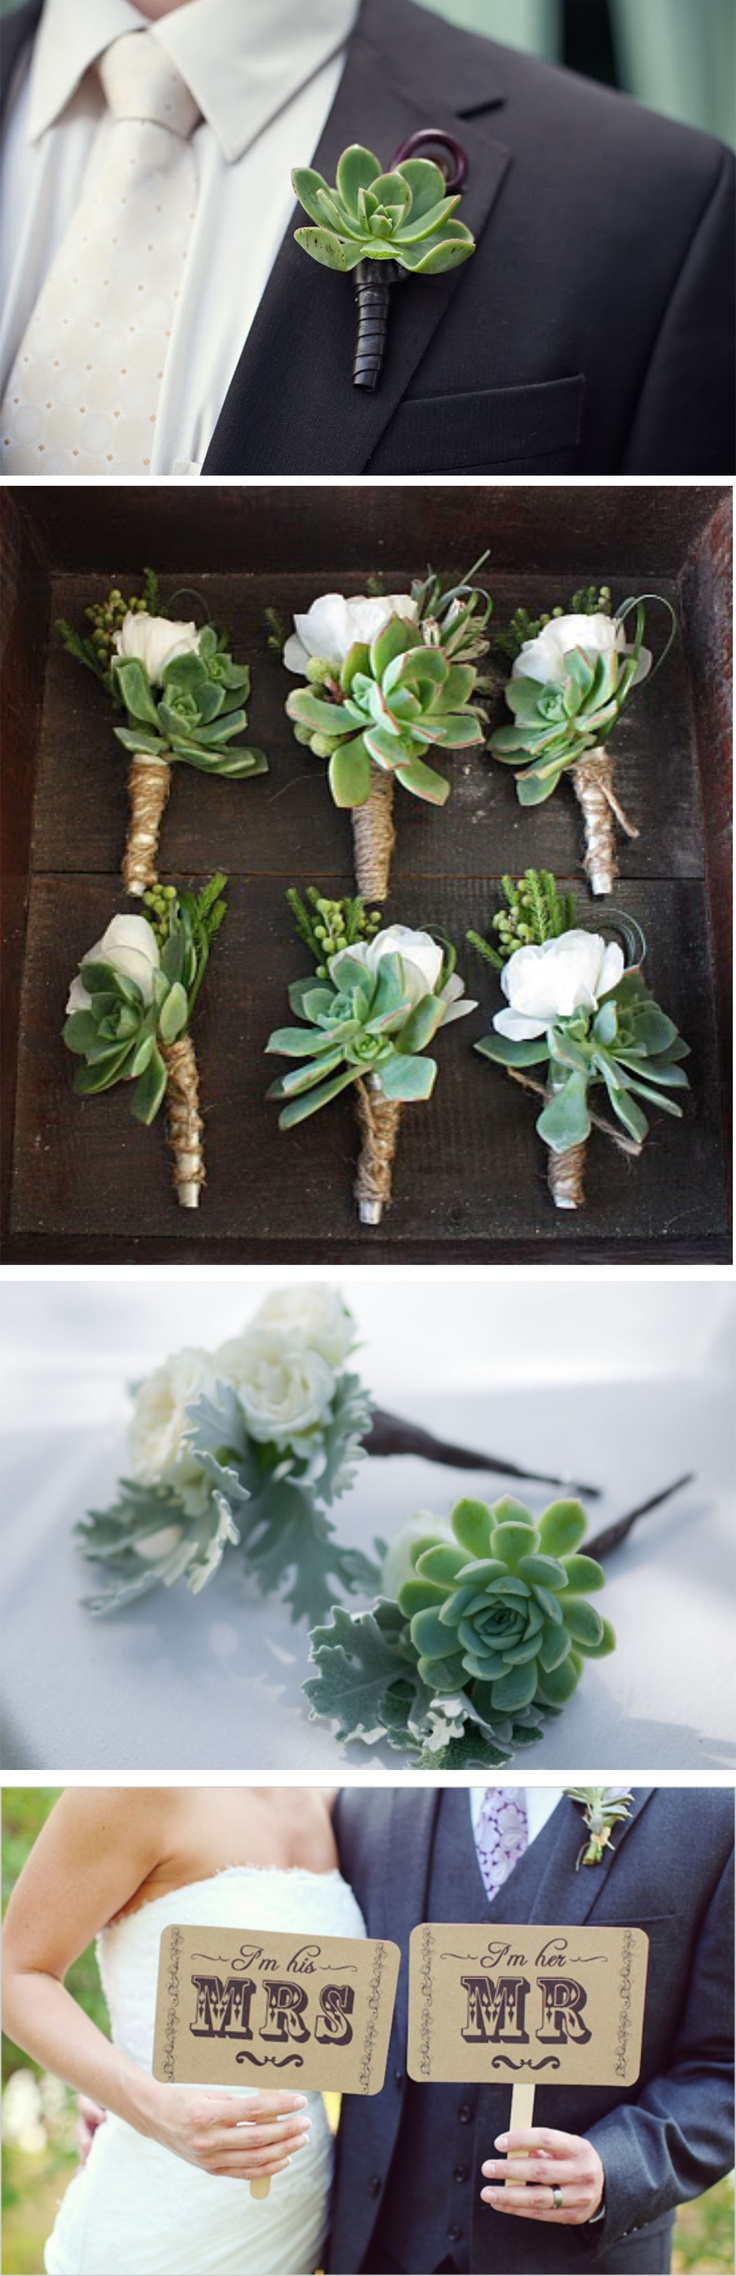 I'm obsessed with succulents... These are gorgeous.